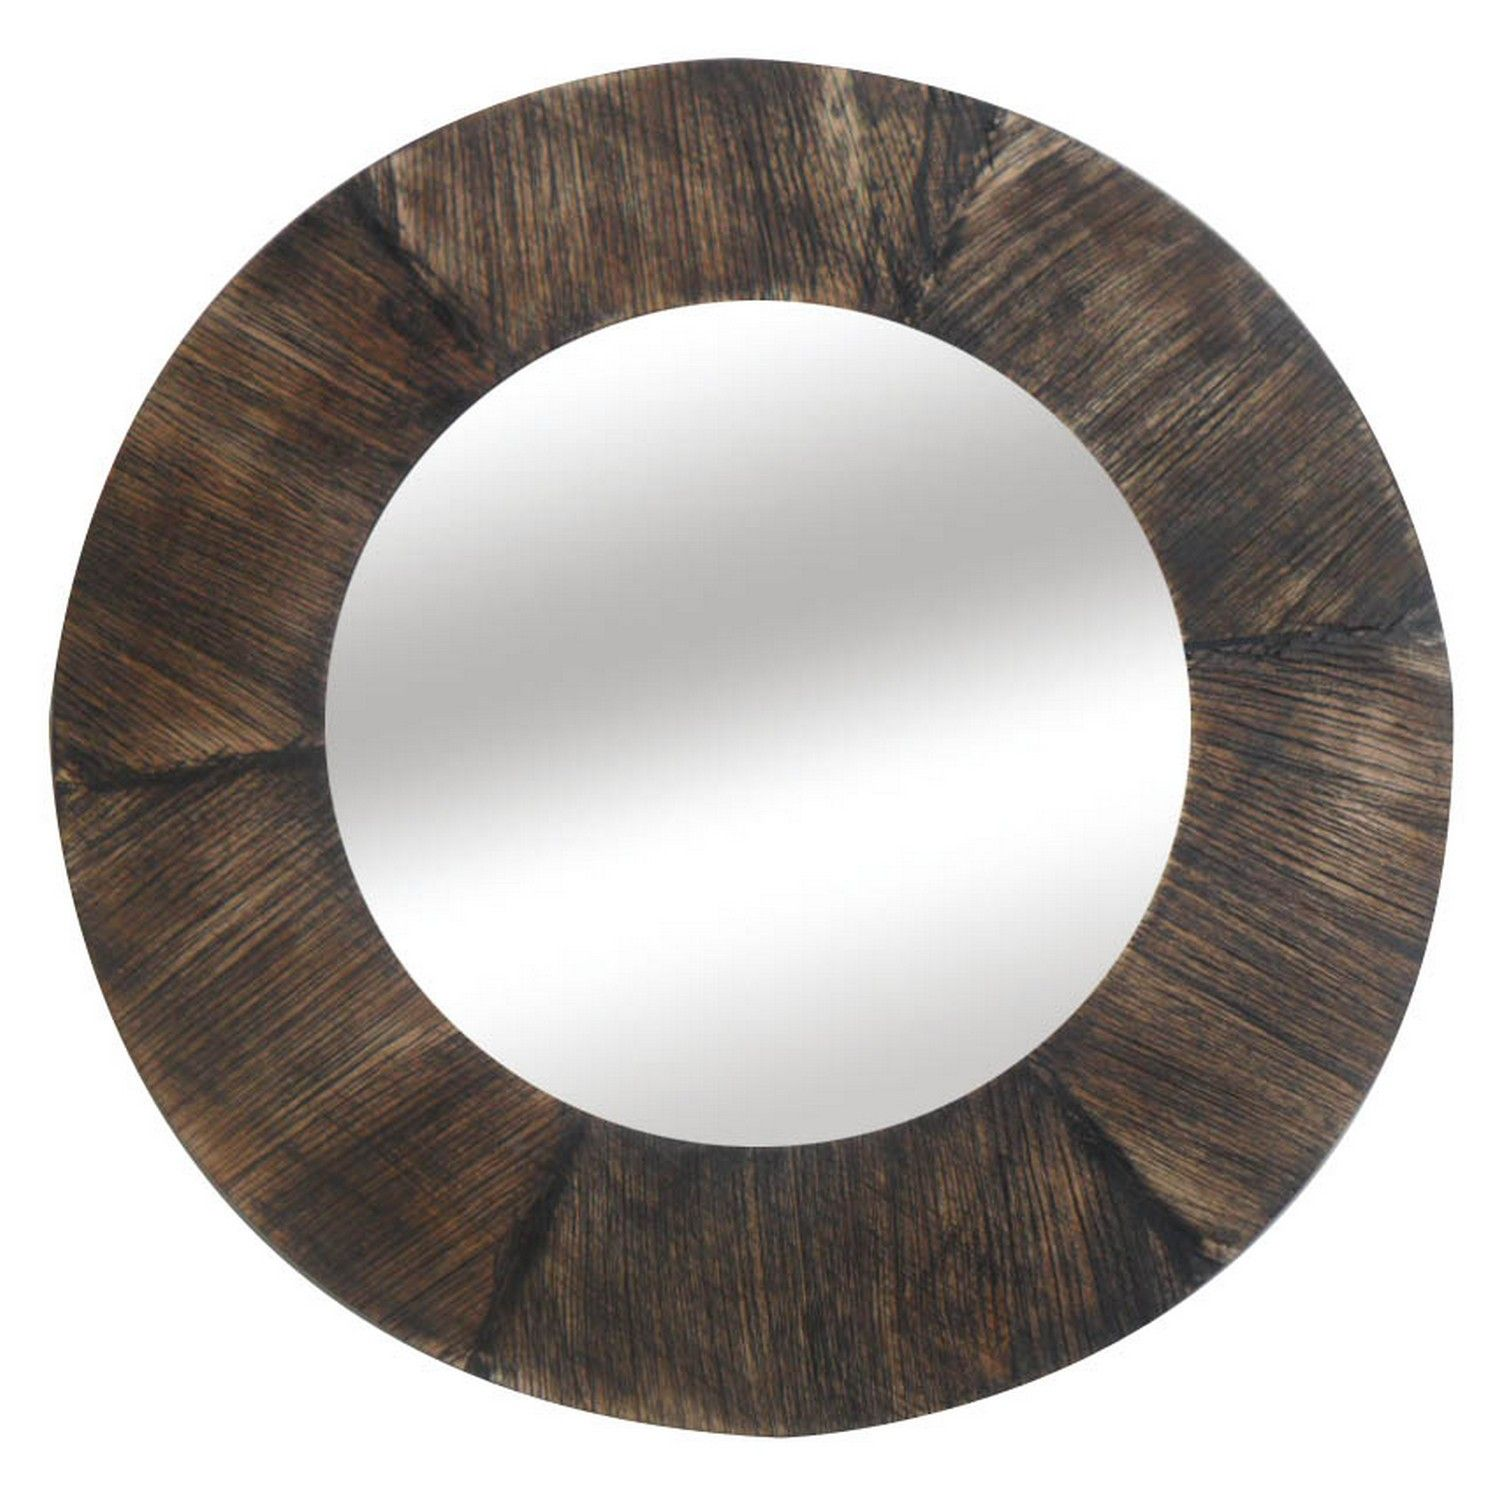 Buy Round Mirror Buy Round Dark Wood Framed Mirror Gallery The Range